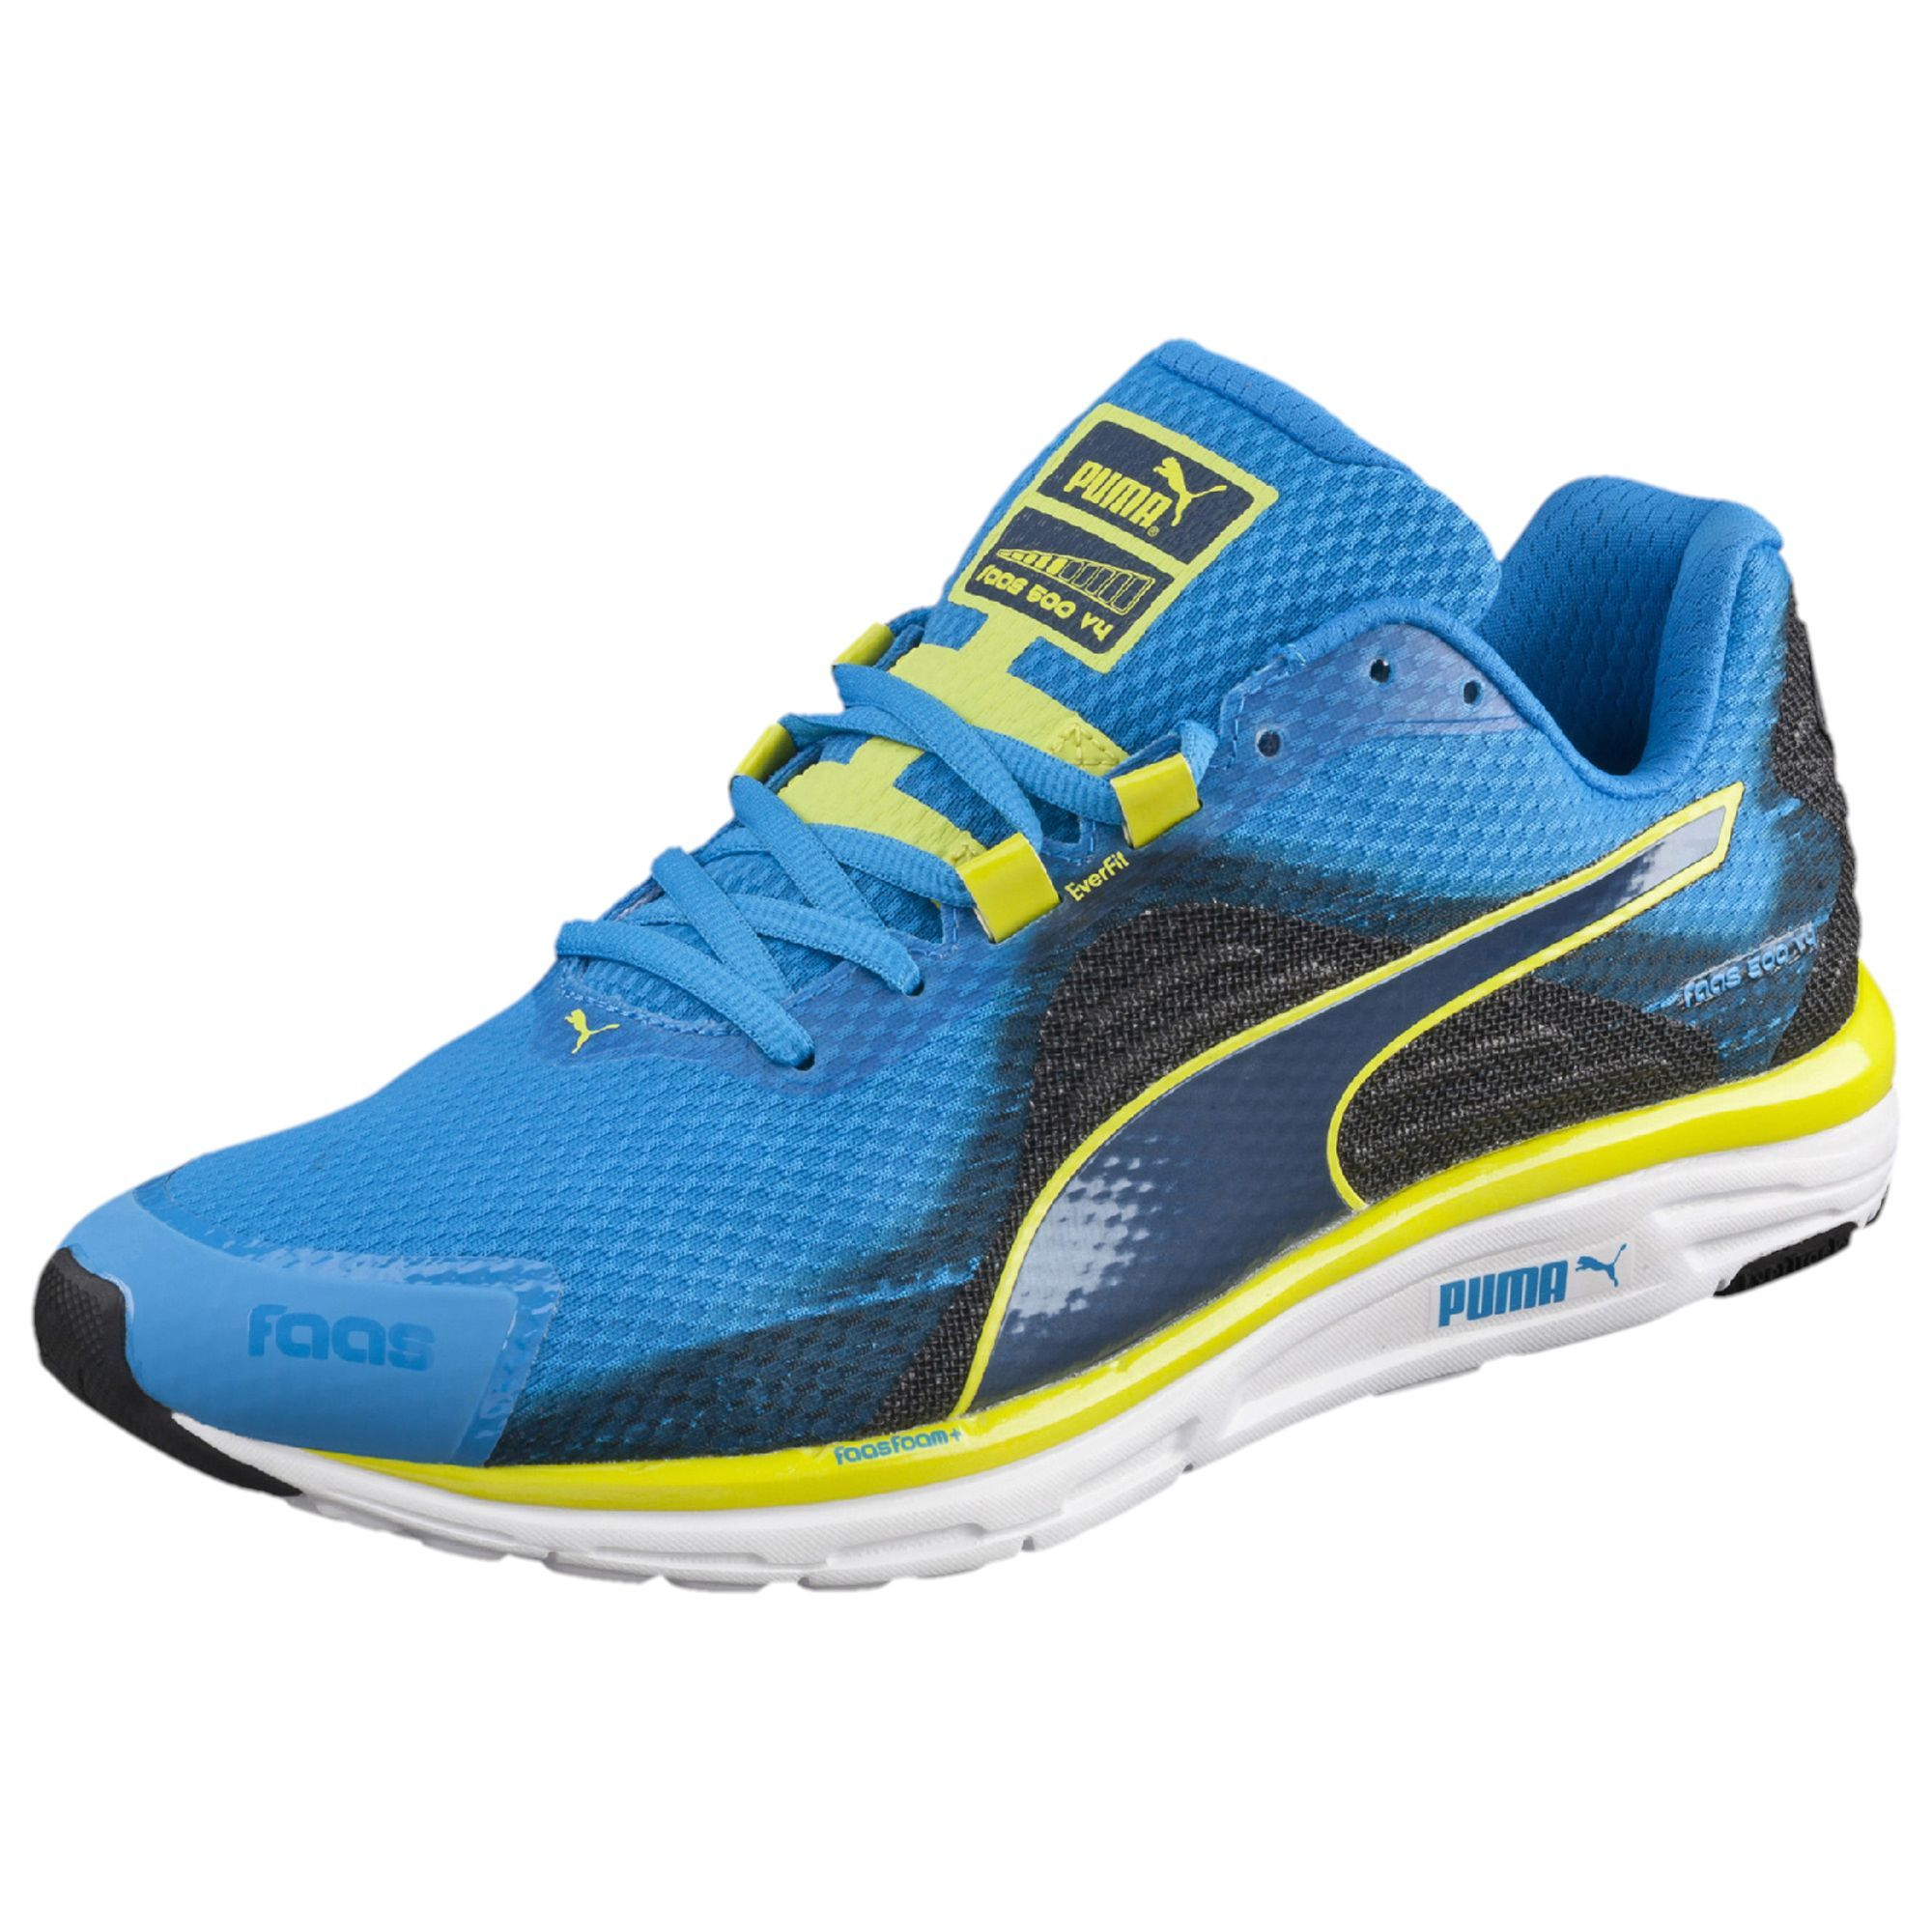 Puma Faas 500 V4 Mens Running Shoes